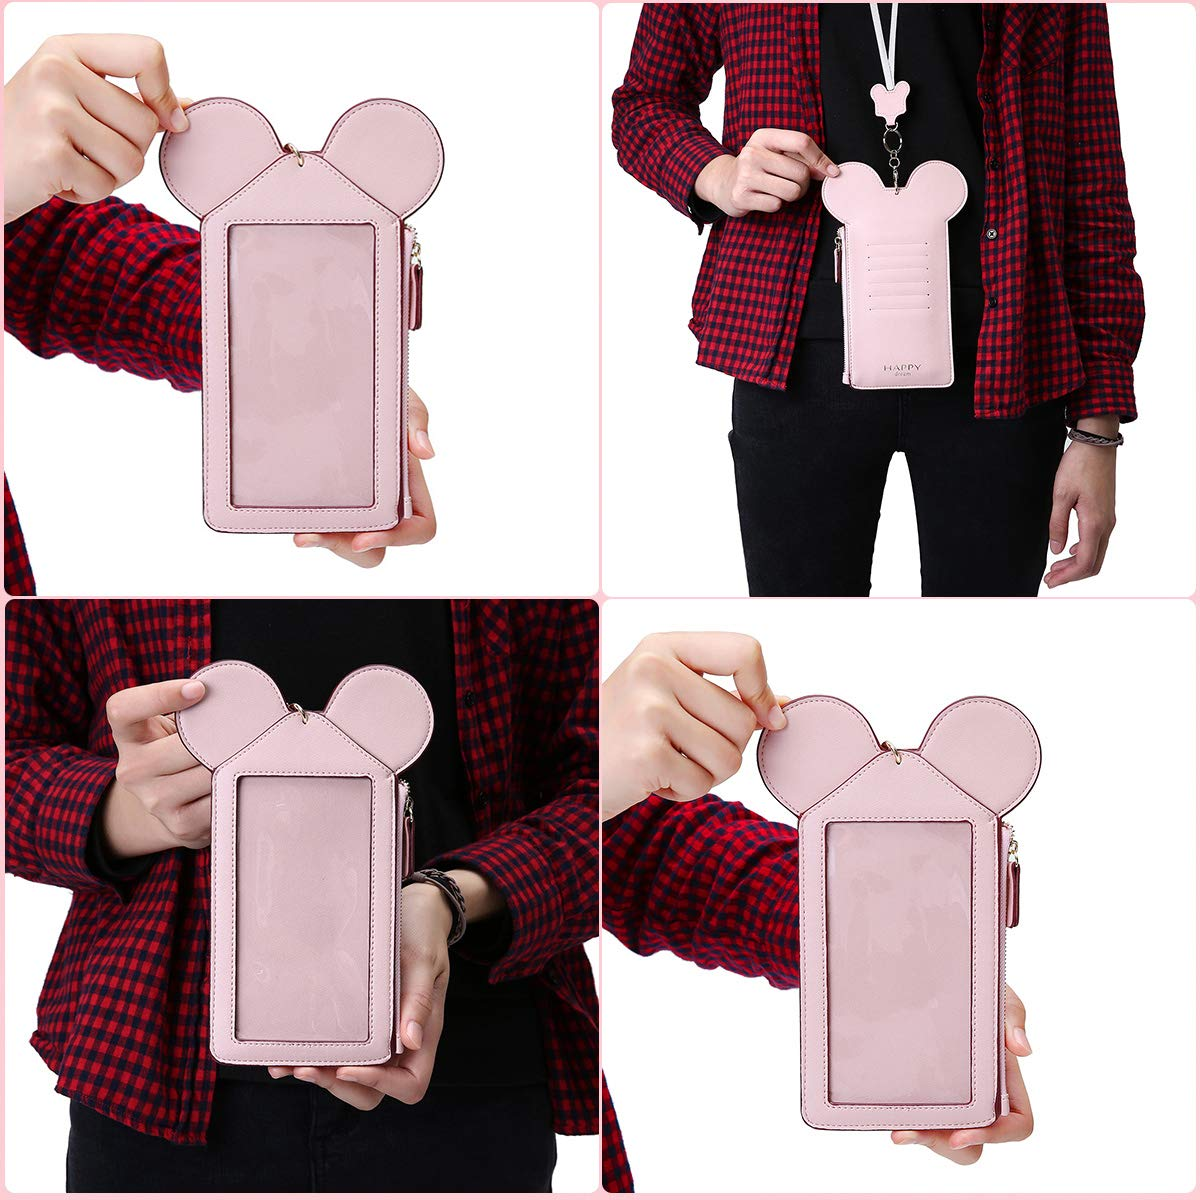 Neck Pouch, Charminer Women Cute Animal Shape Lanyard Phone Purse Neck Bag Travel Documents, Card Holder Coin Purse Neck Bag for 4.7/5.5in Phones Light Pink 4.7in by CHARMINER (Image #8)